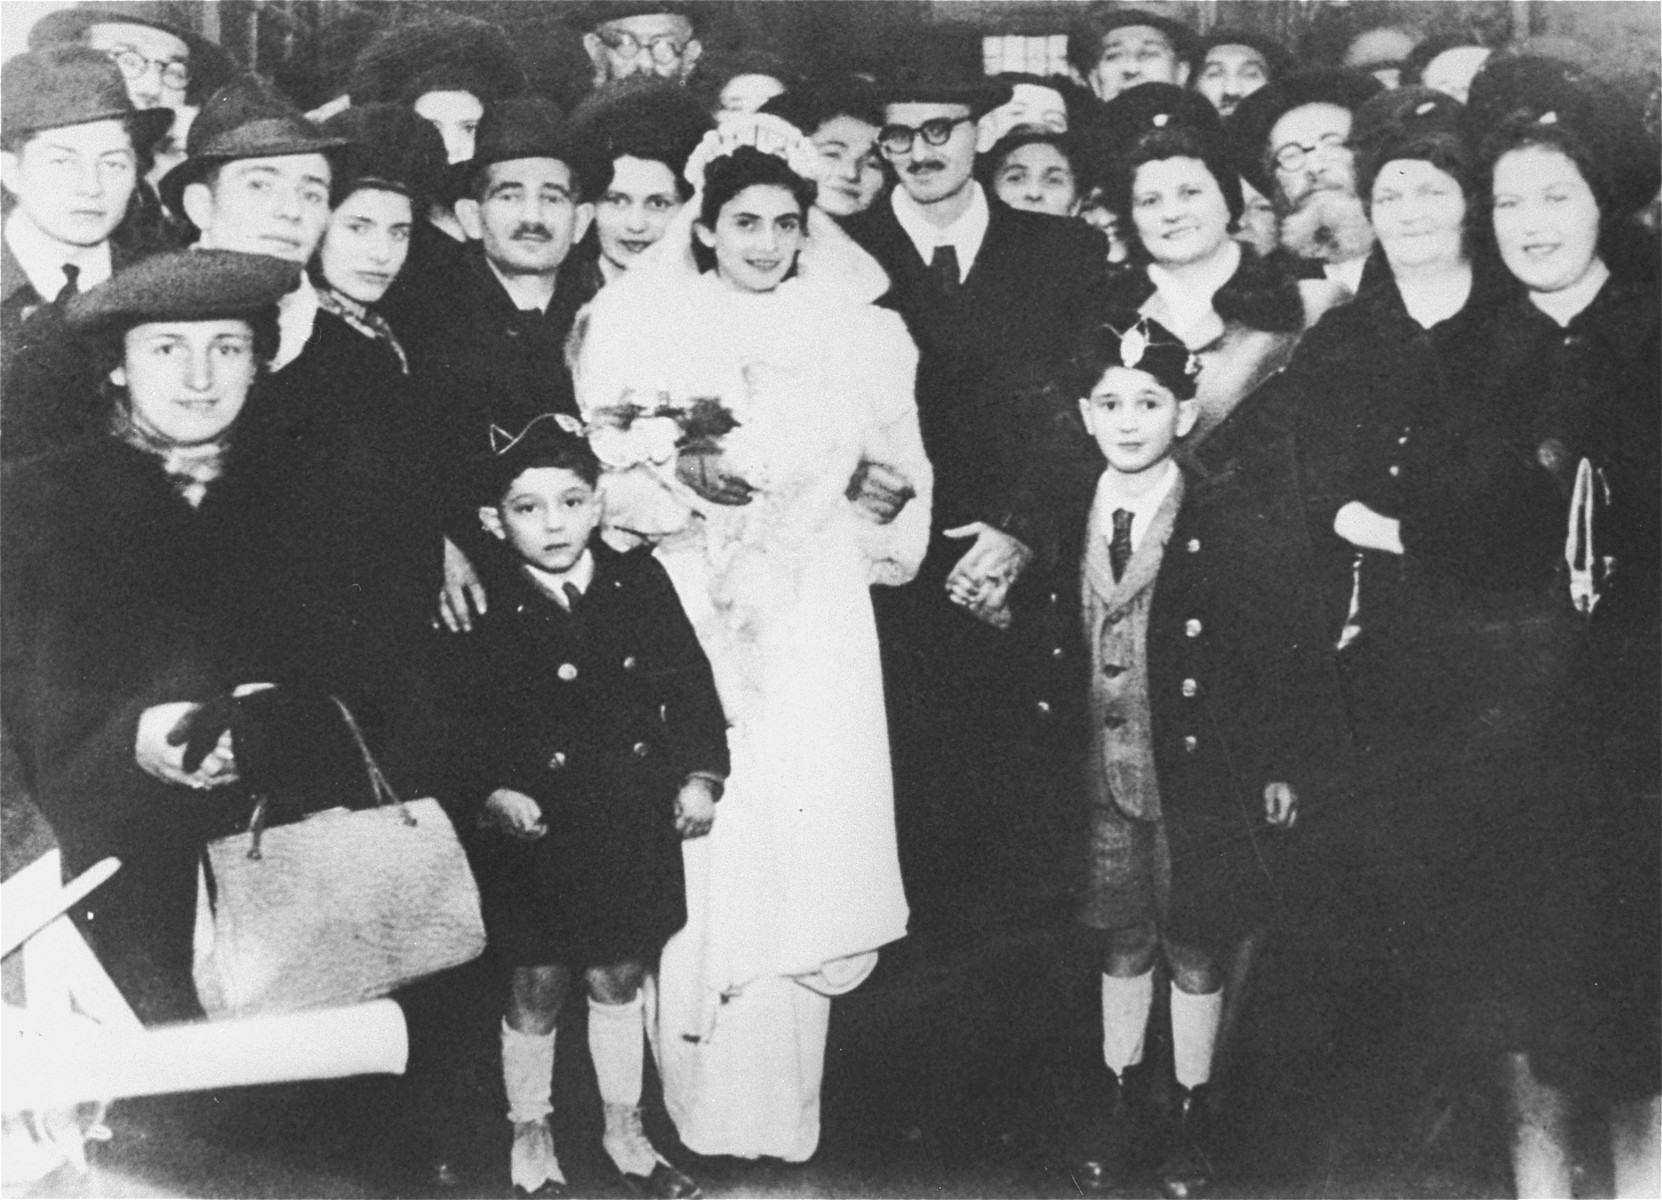 Group portrait of members of a Jewish wedding party in Bucharest.  Among those pictured is the bride, Grete Kleinman.  Her father stands next to her on the left.  Her brother, Eugene Kleinman, stands in the second row from the top, second from the left.  Eugene Woolrich stands in the second row from the top at the far left.